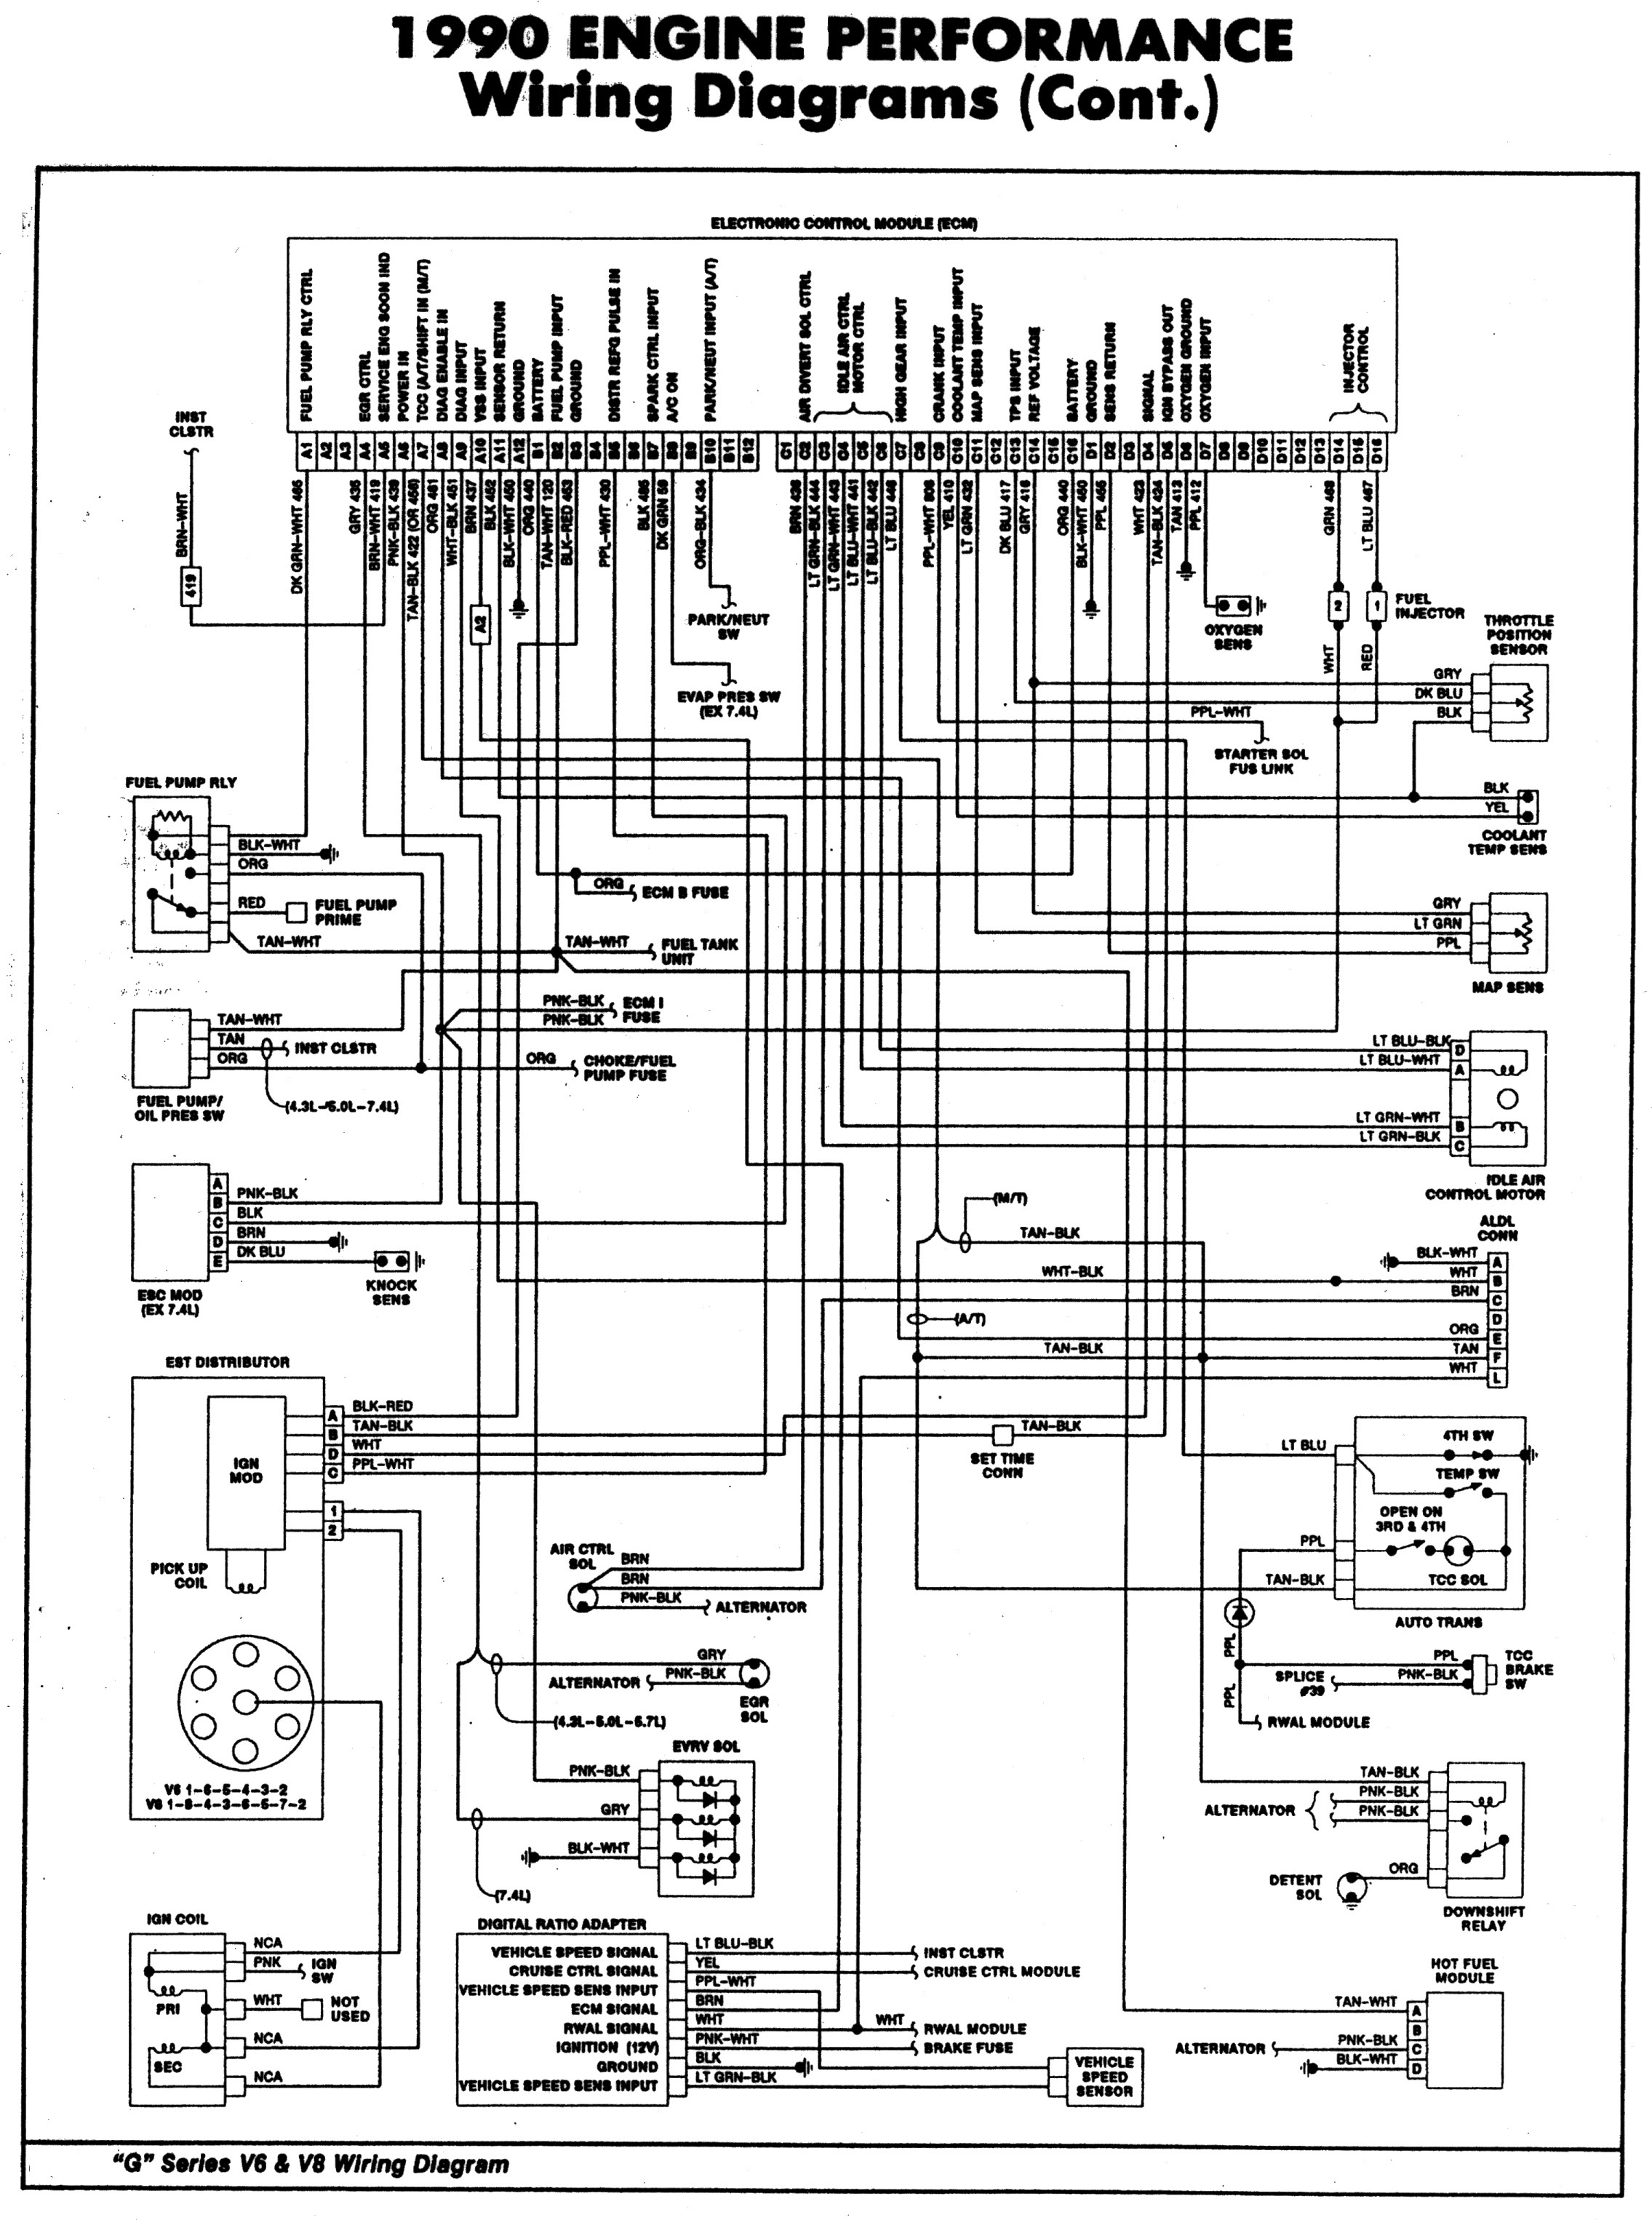 91 S10 4 3 Tbi Engine Wiring Diagram Excellent Electrical S 10 Ignitiondiagram 1990 Chevy Suburban 350 Installation Land Rh Pinterest Com Ecm